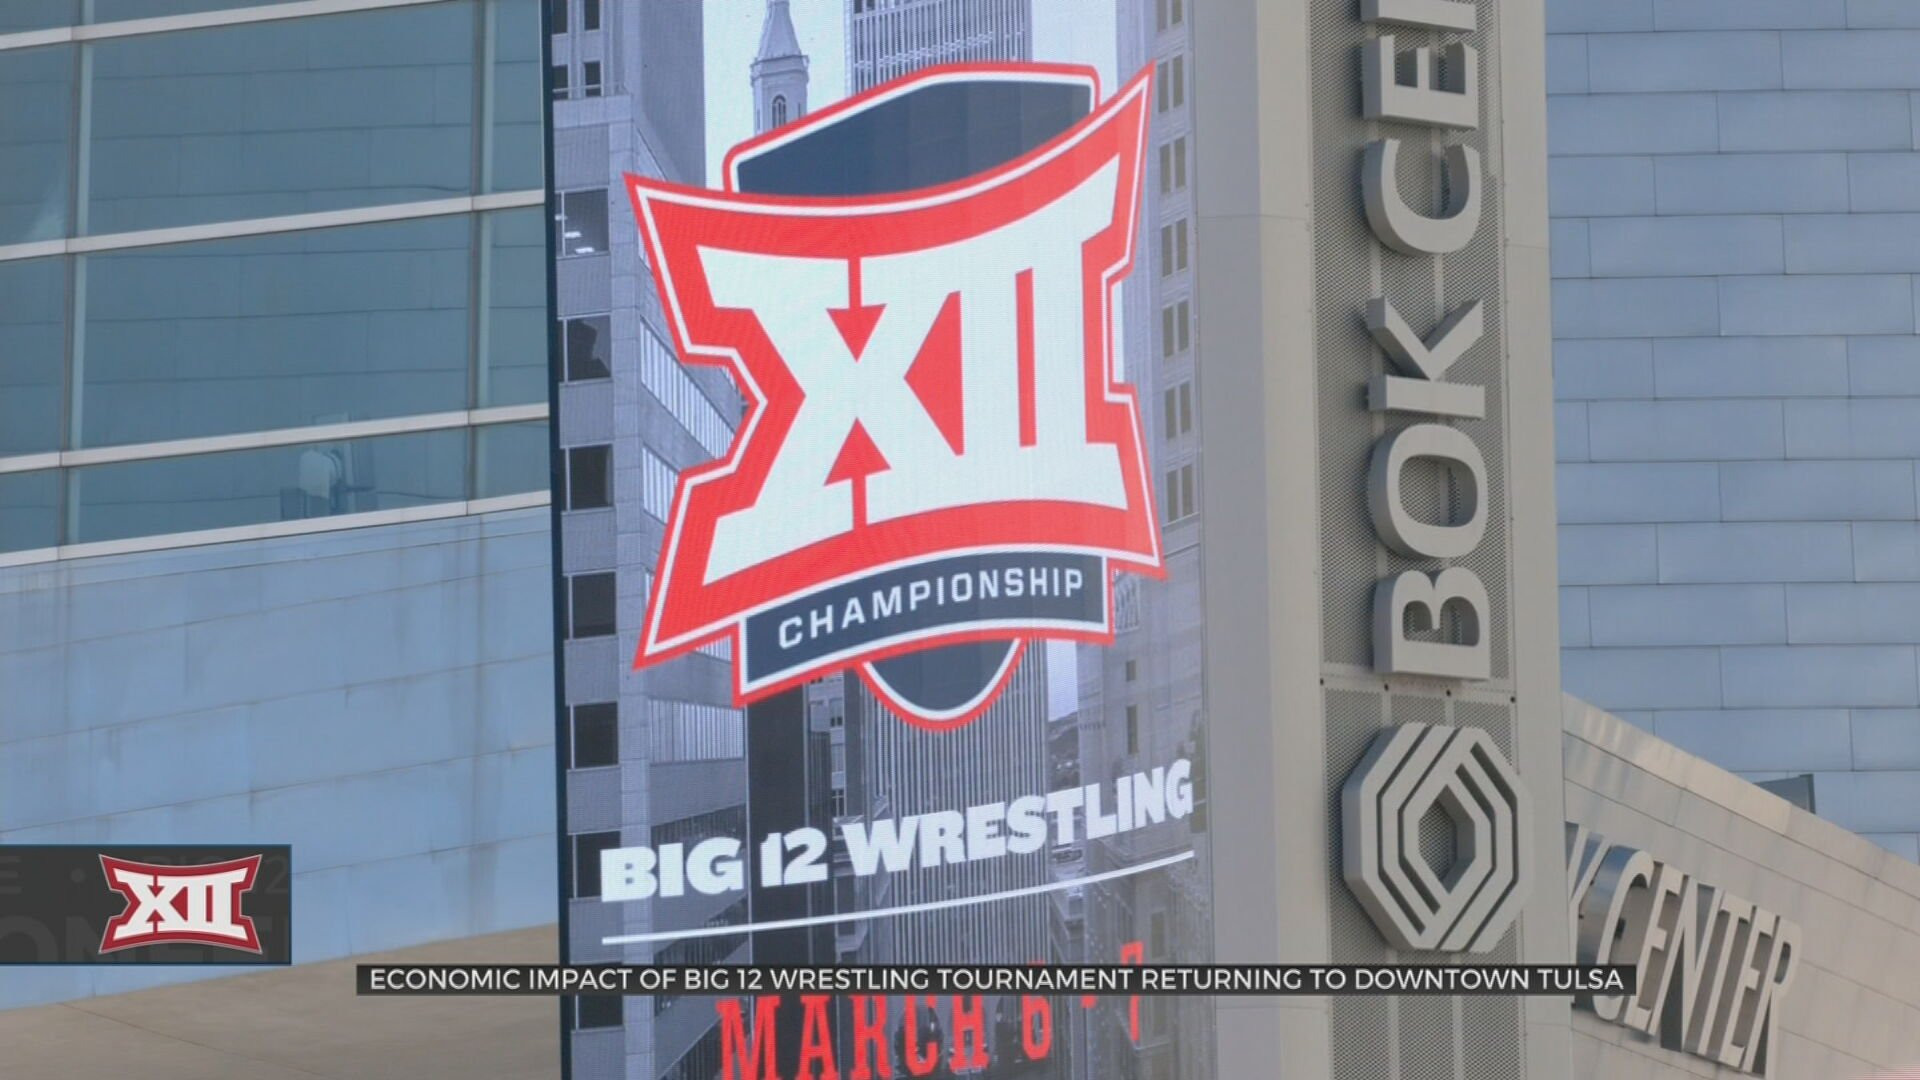 Tulsa Tourism Expecting Economy Boom From Big 12 Wrestling Tournament